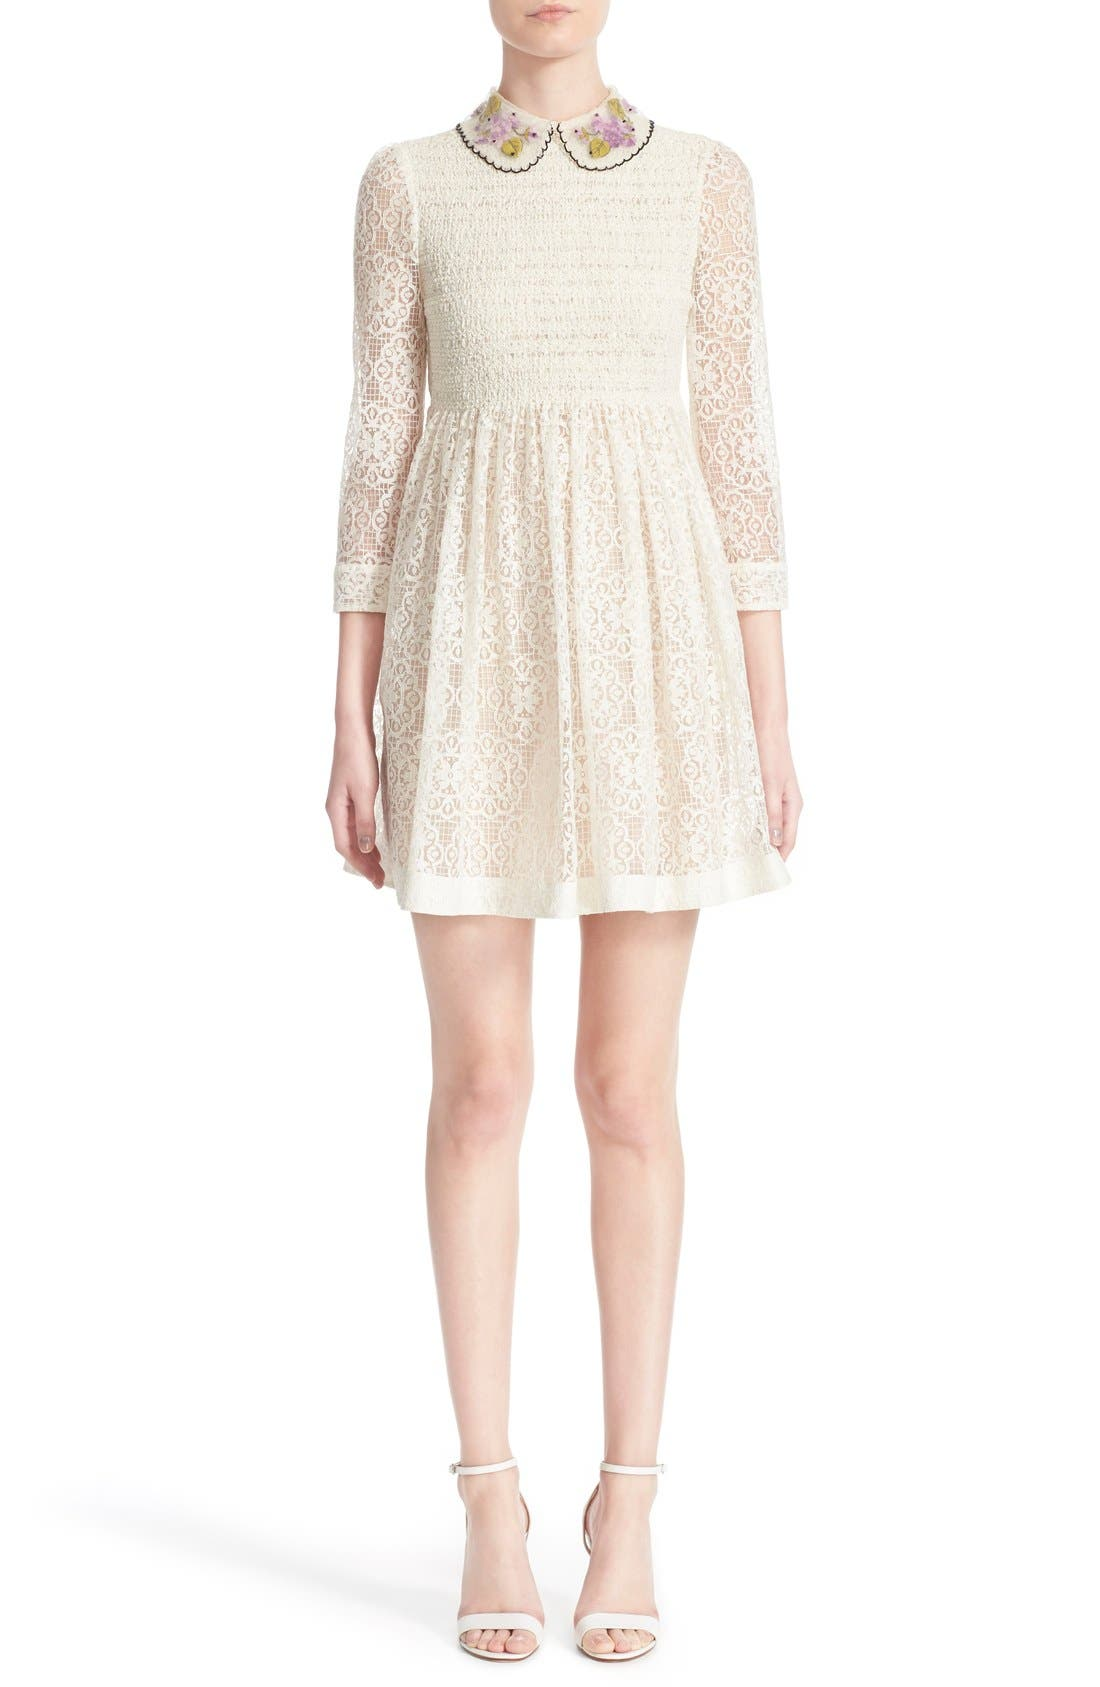 Alternate Image 1 Selected - RED Valentino Smocked Bodice Lace Dress